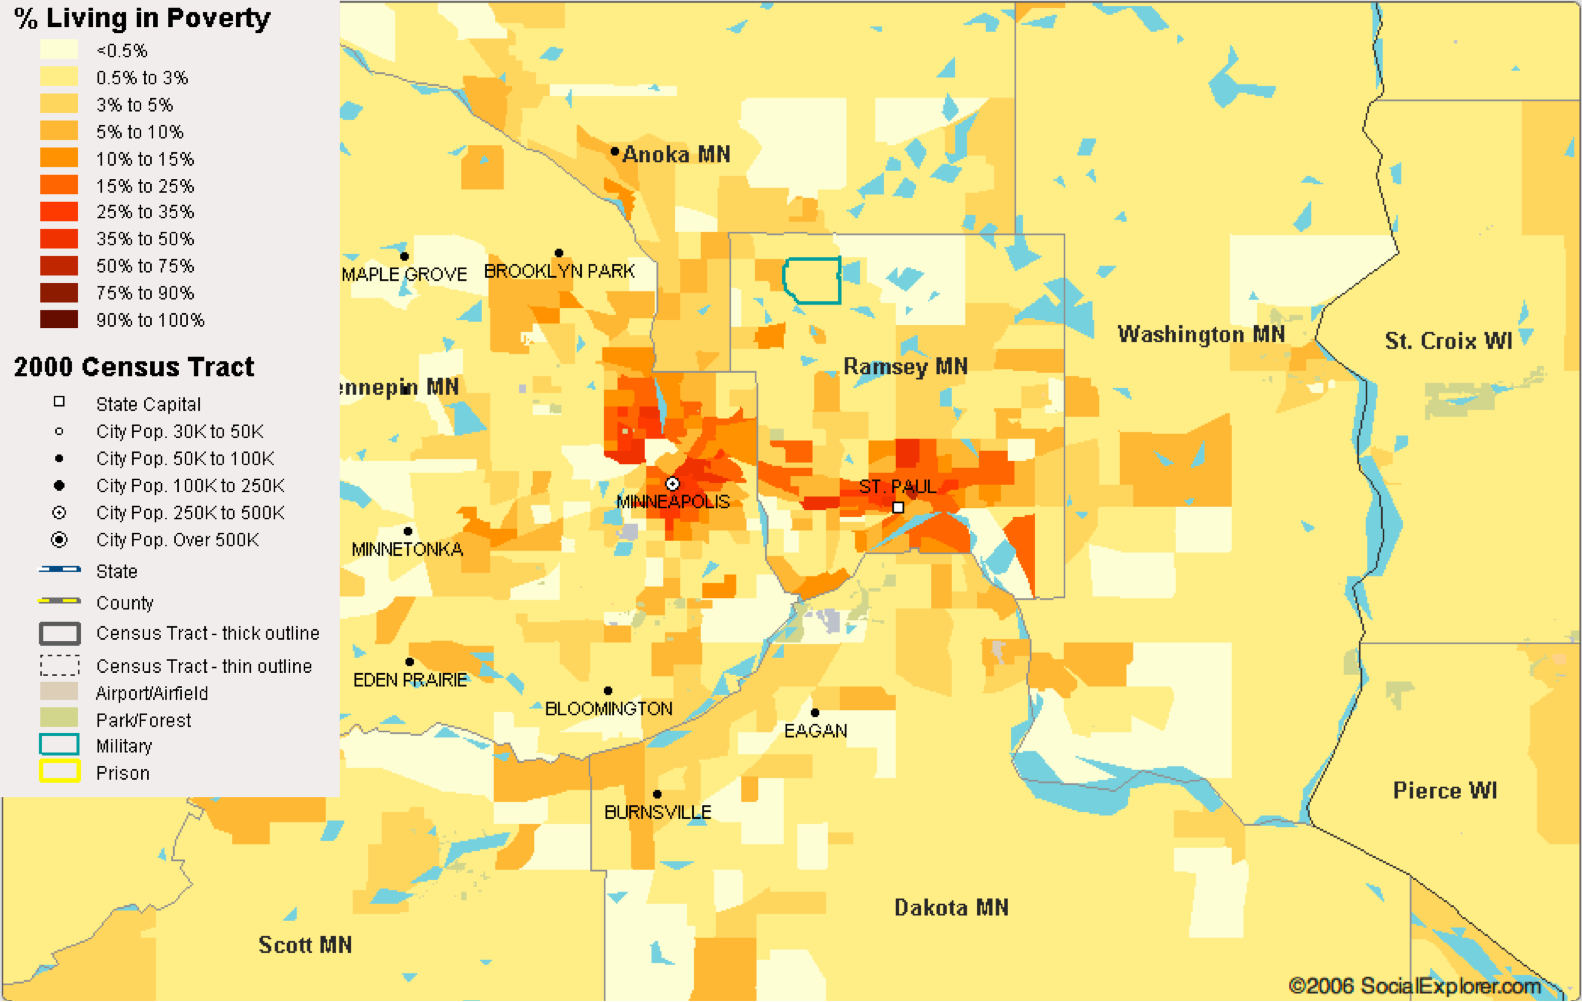 Minneapolis-St. Paul's Percent in Poverty